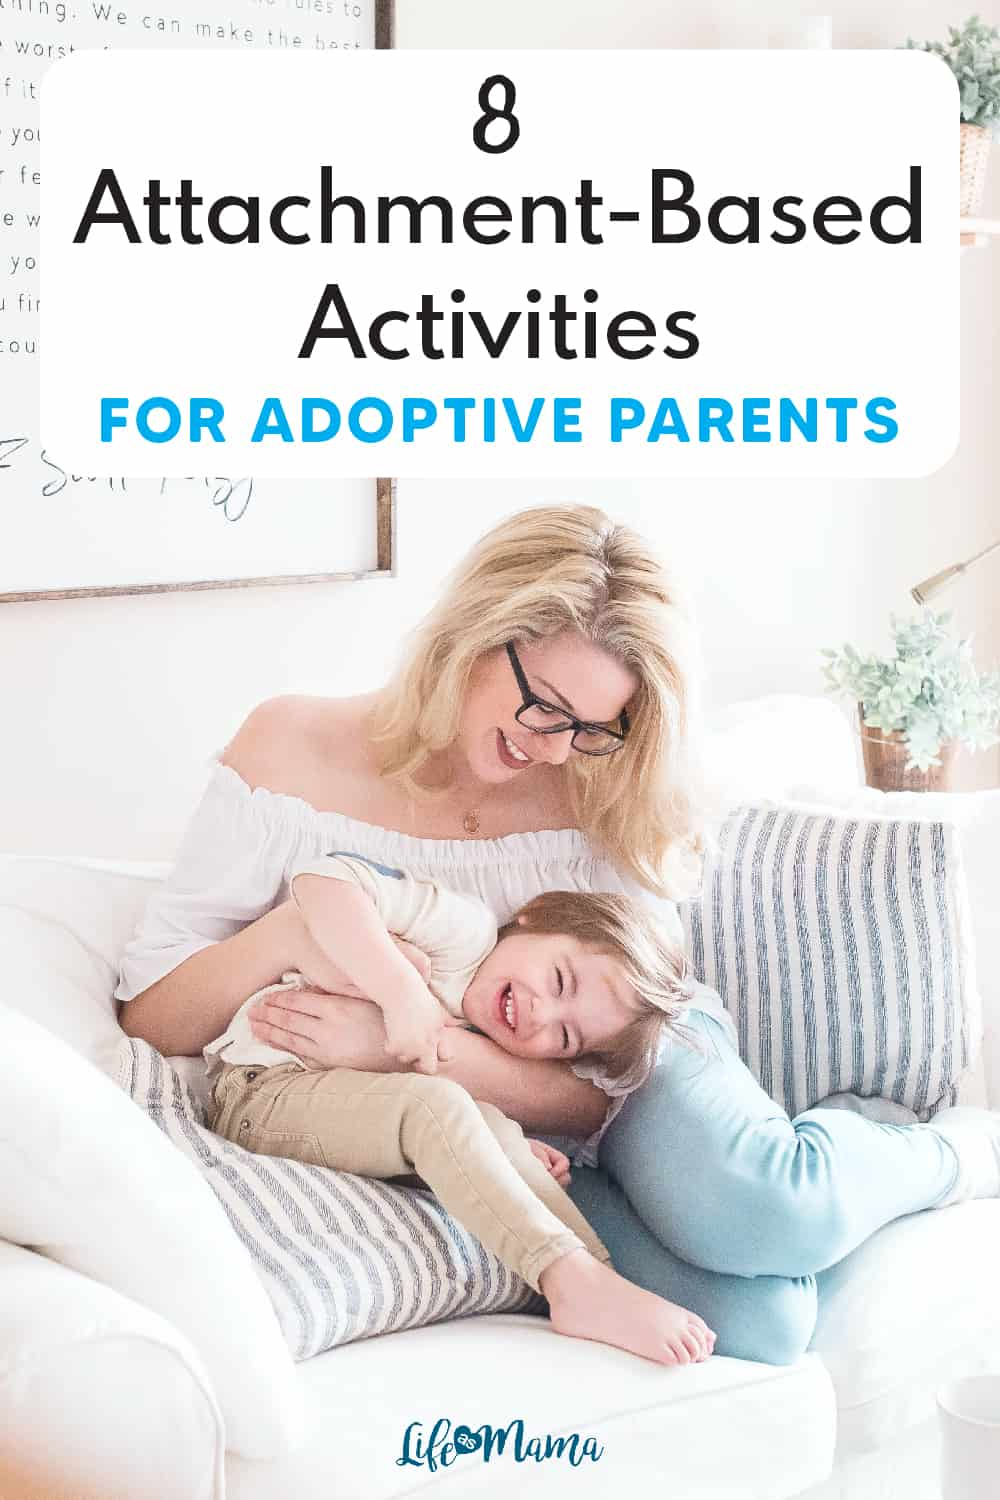 Attachment-Based Activities for Adoptive Parents